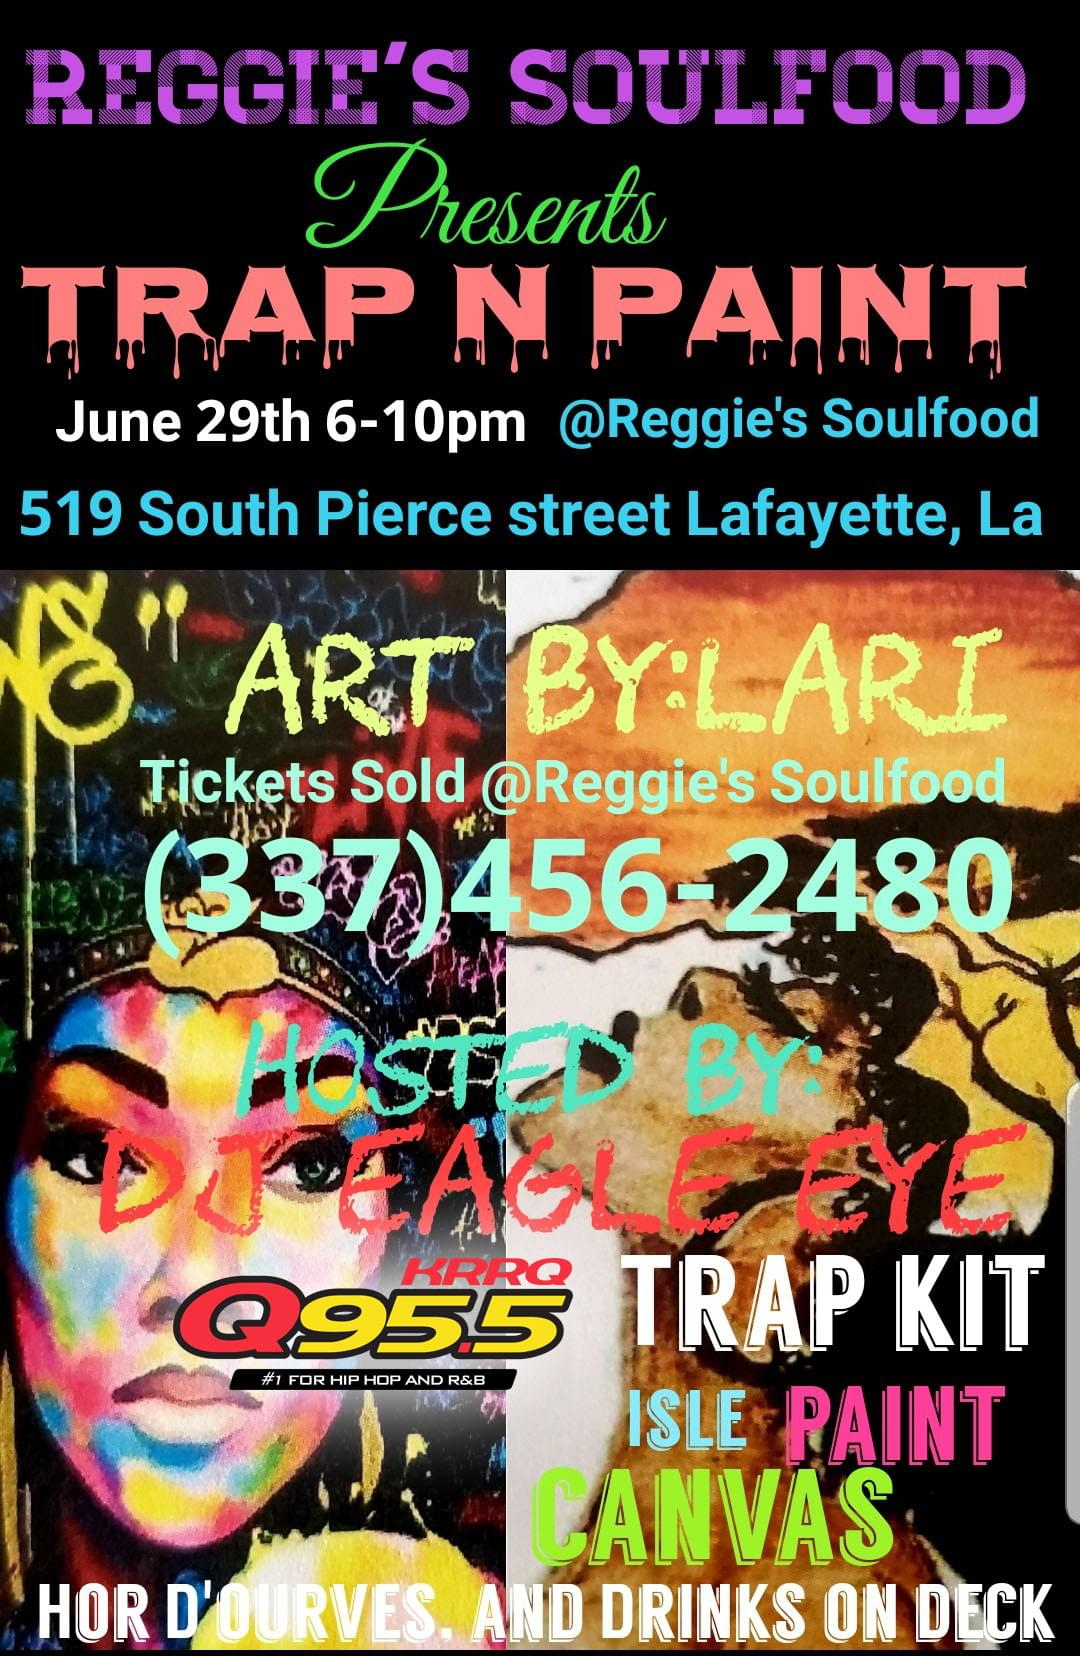 Reggie's Soulfood Presents Trap n Paint.